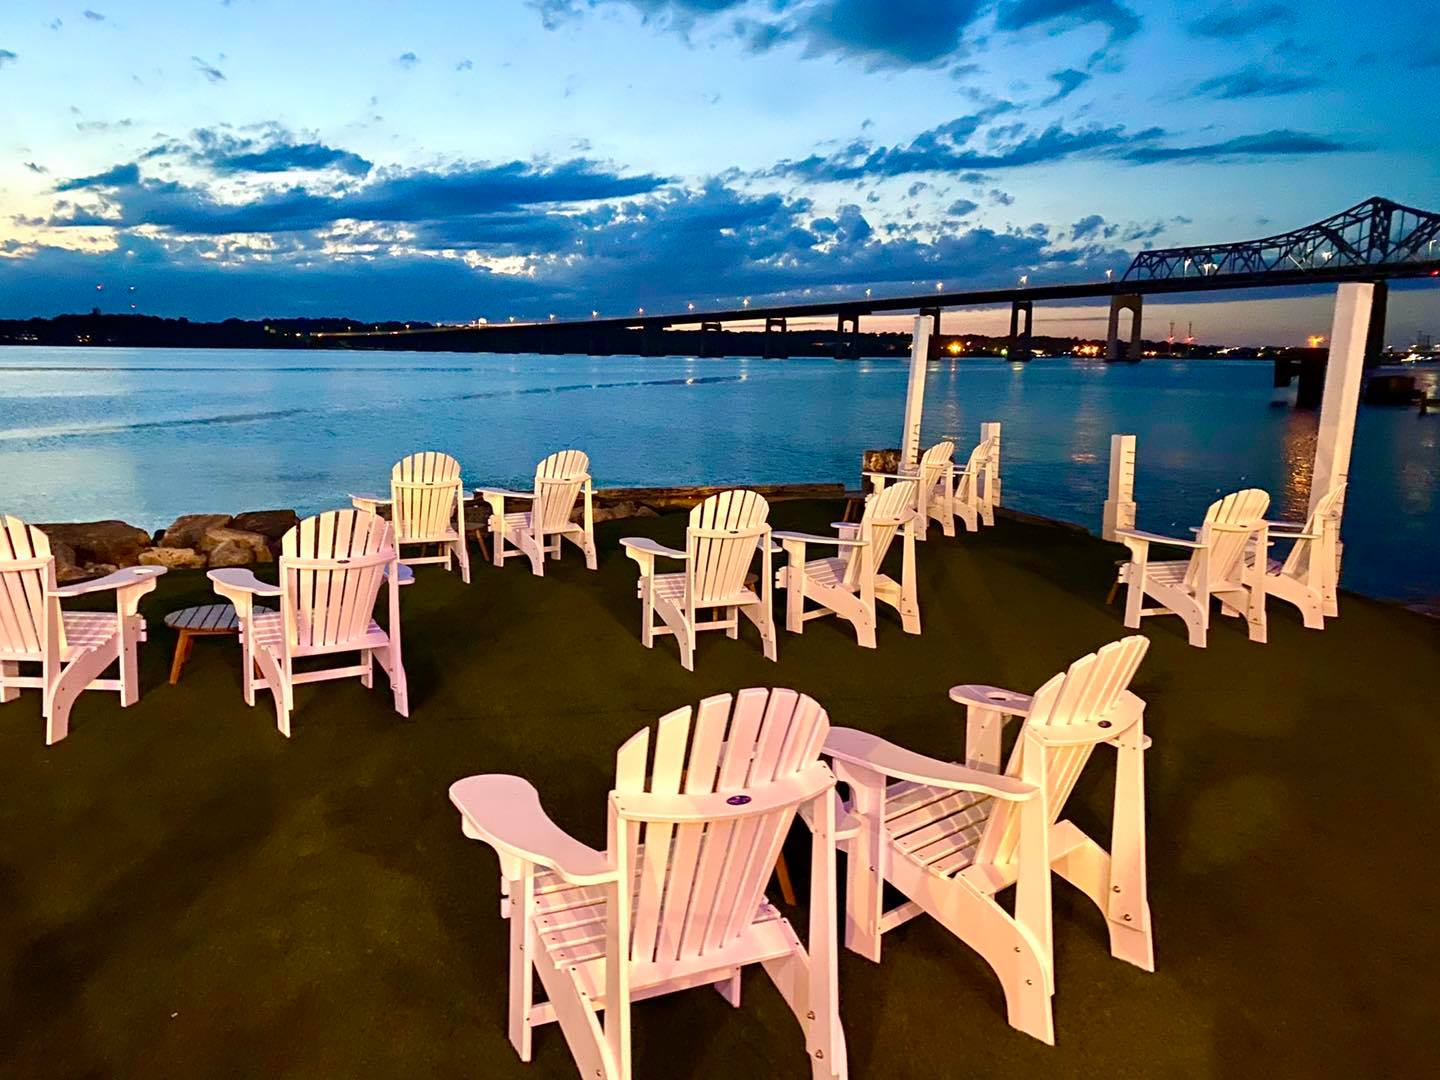 New Fall River waterfront restaurant begins taking reservations